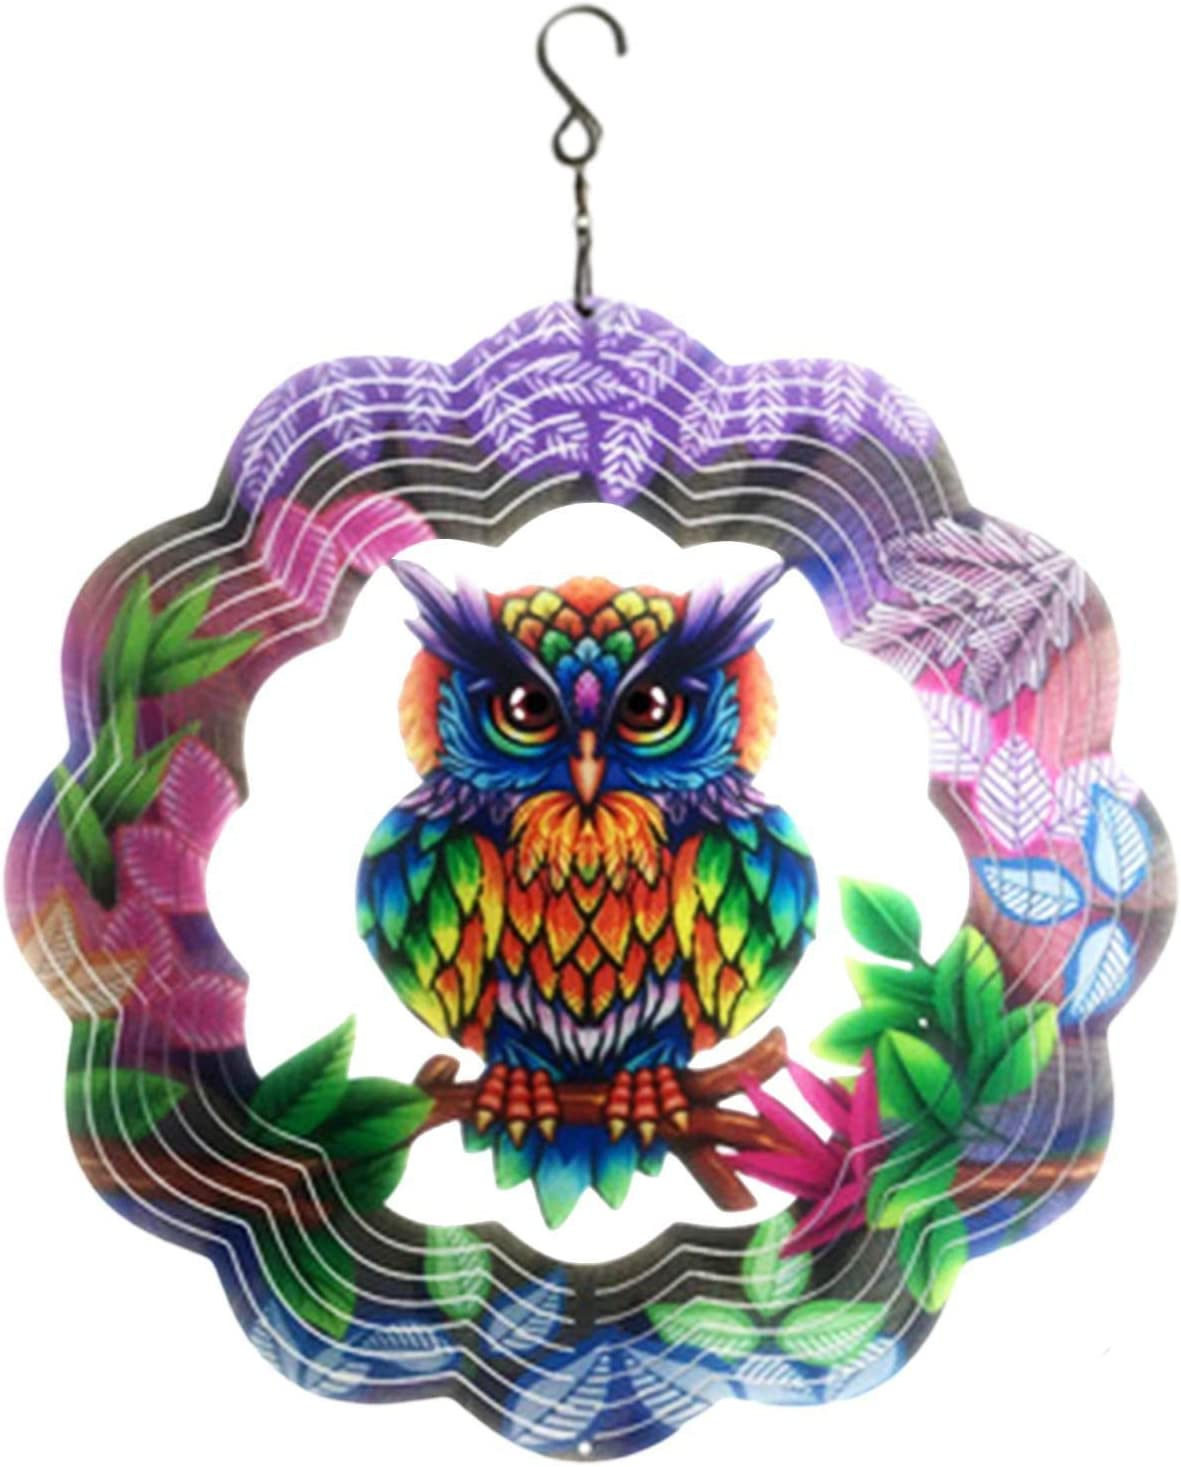 HEYJUDY Metal Wind Spinner Outdoor Garden Decoration Yard Decor 3D Stainless Steel Metal Sculptures Owl Kinetic Hanging Whirligig Decorations Backyard Outside Indoor Outdoor Patio and Lawn Ornaments